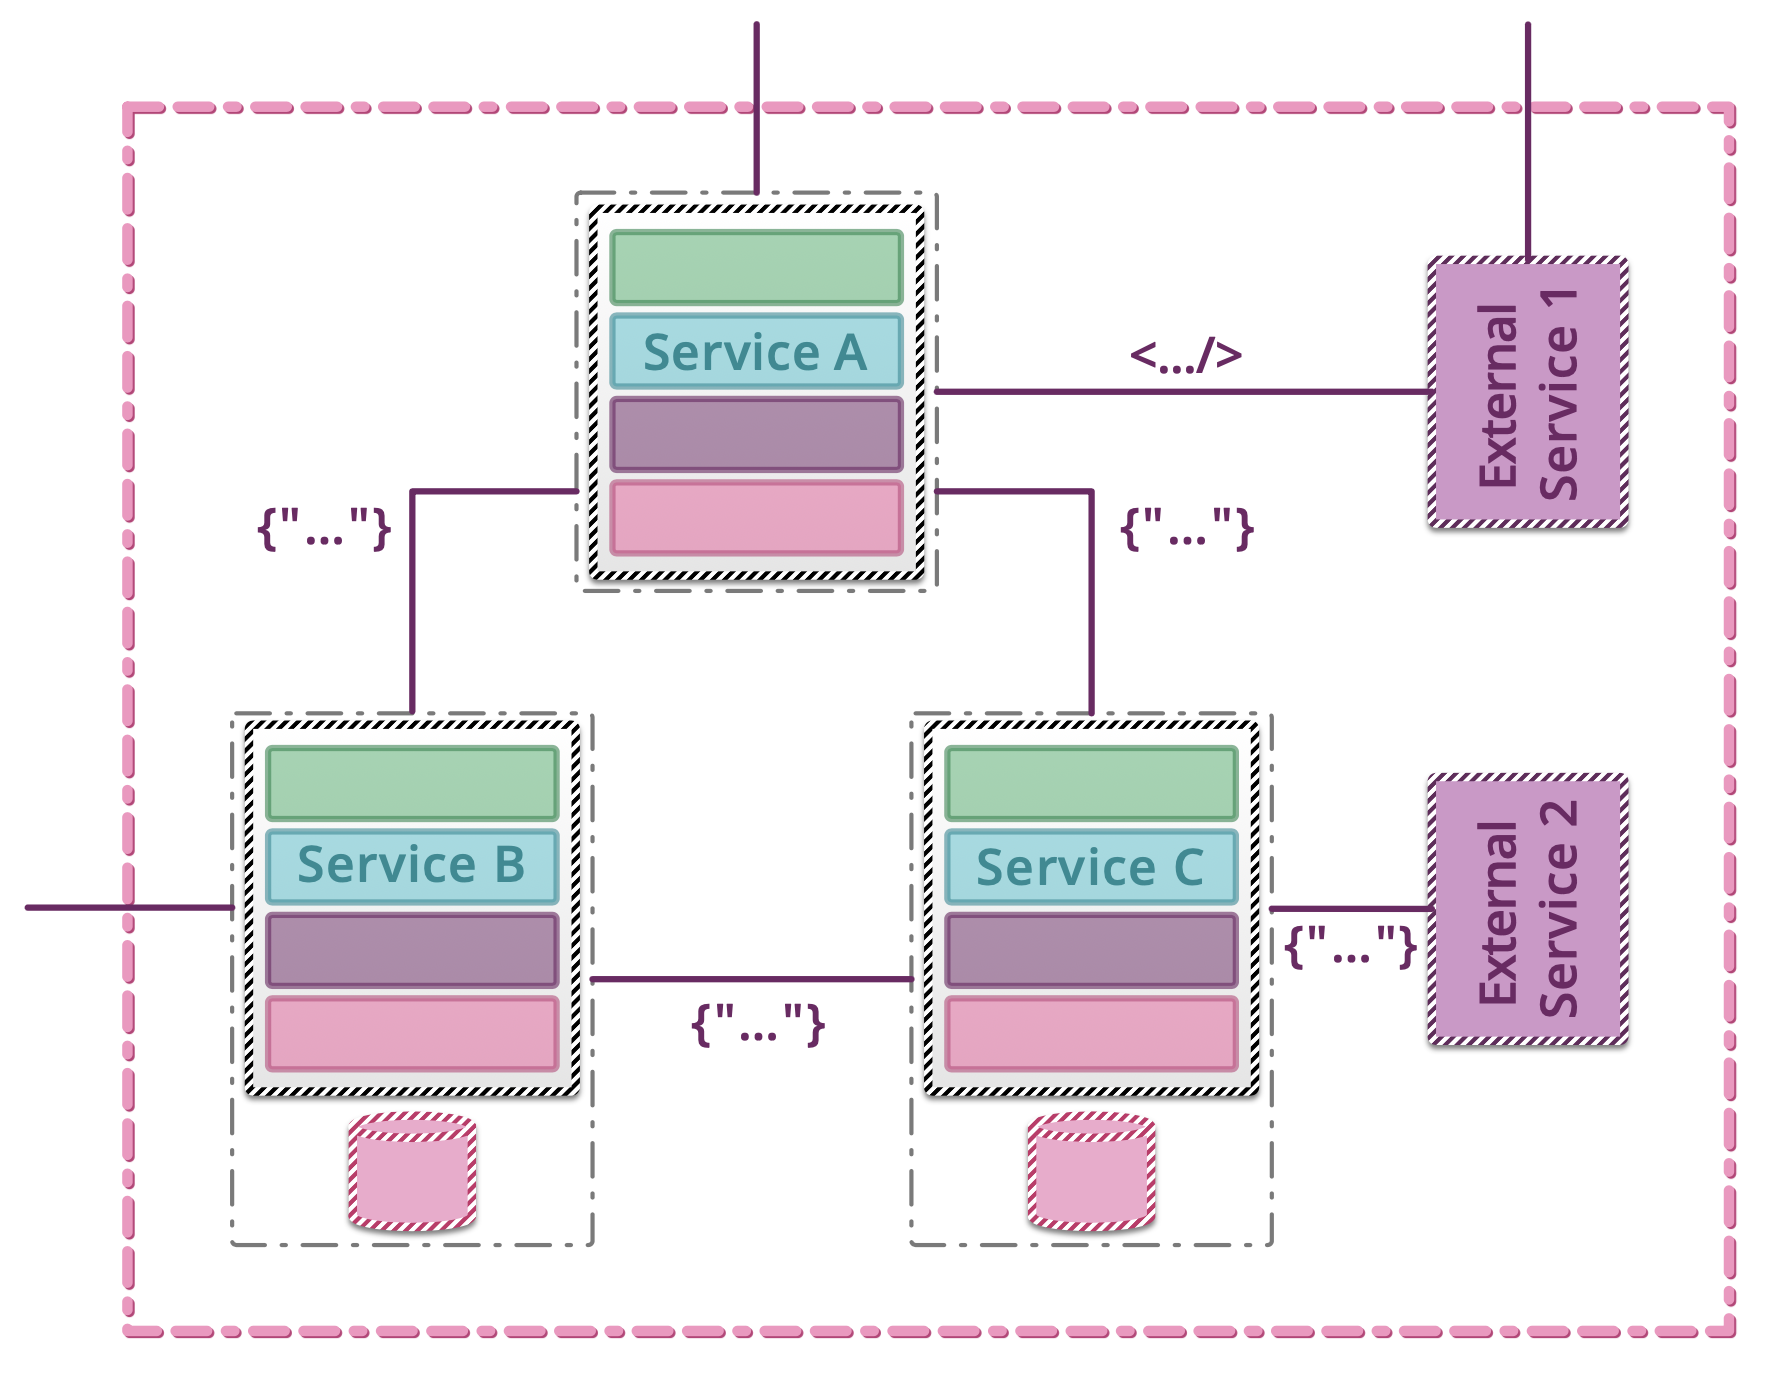 ../../_images/testing-microservices-12.png